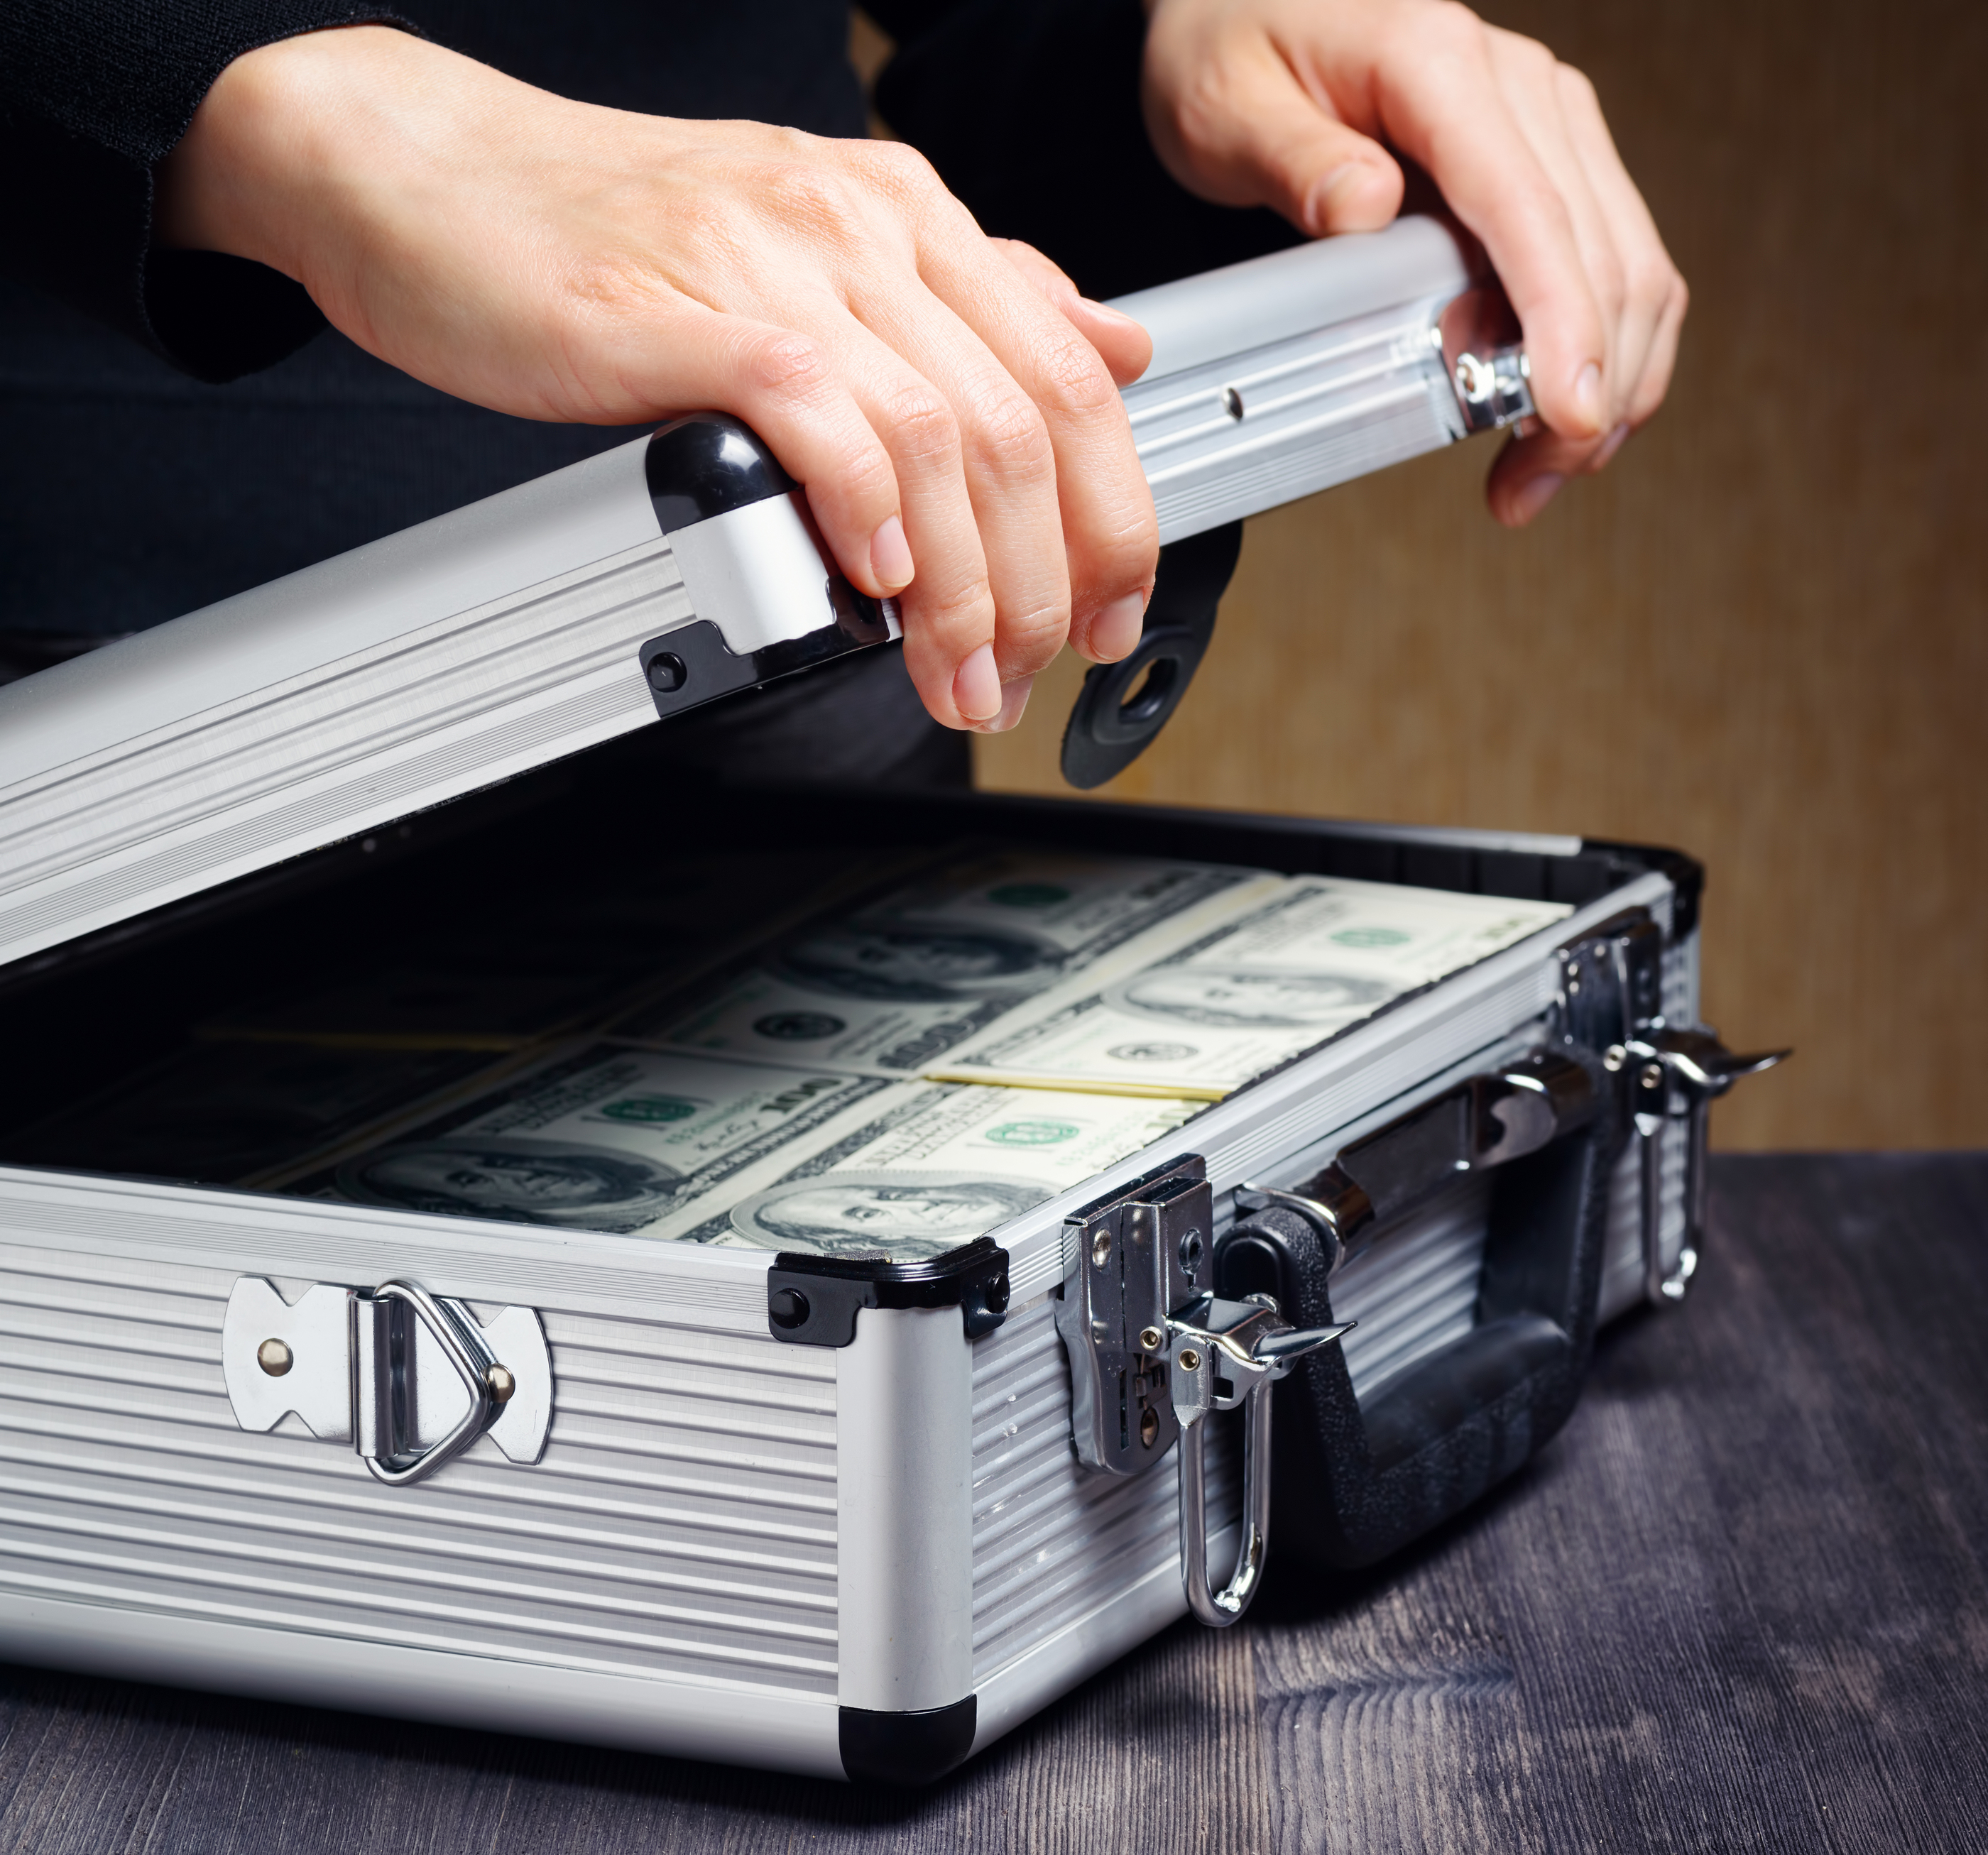 Has Anyone Ever Tried To Pay For Something With A Briefcase Full Of Cash?